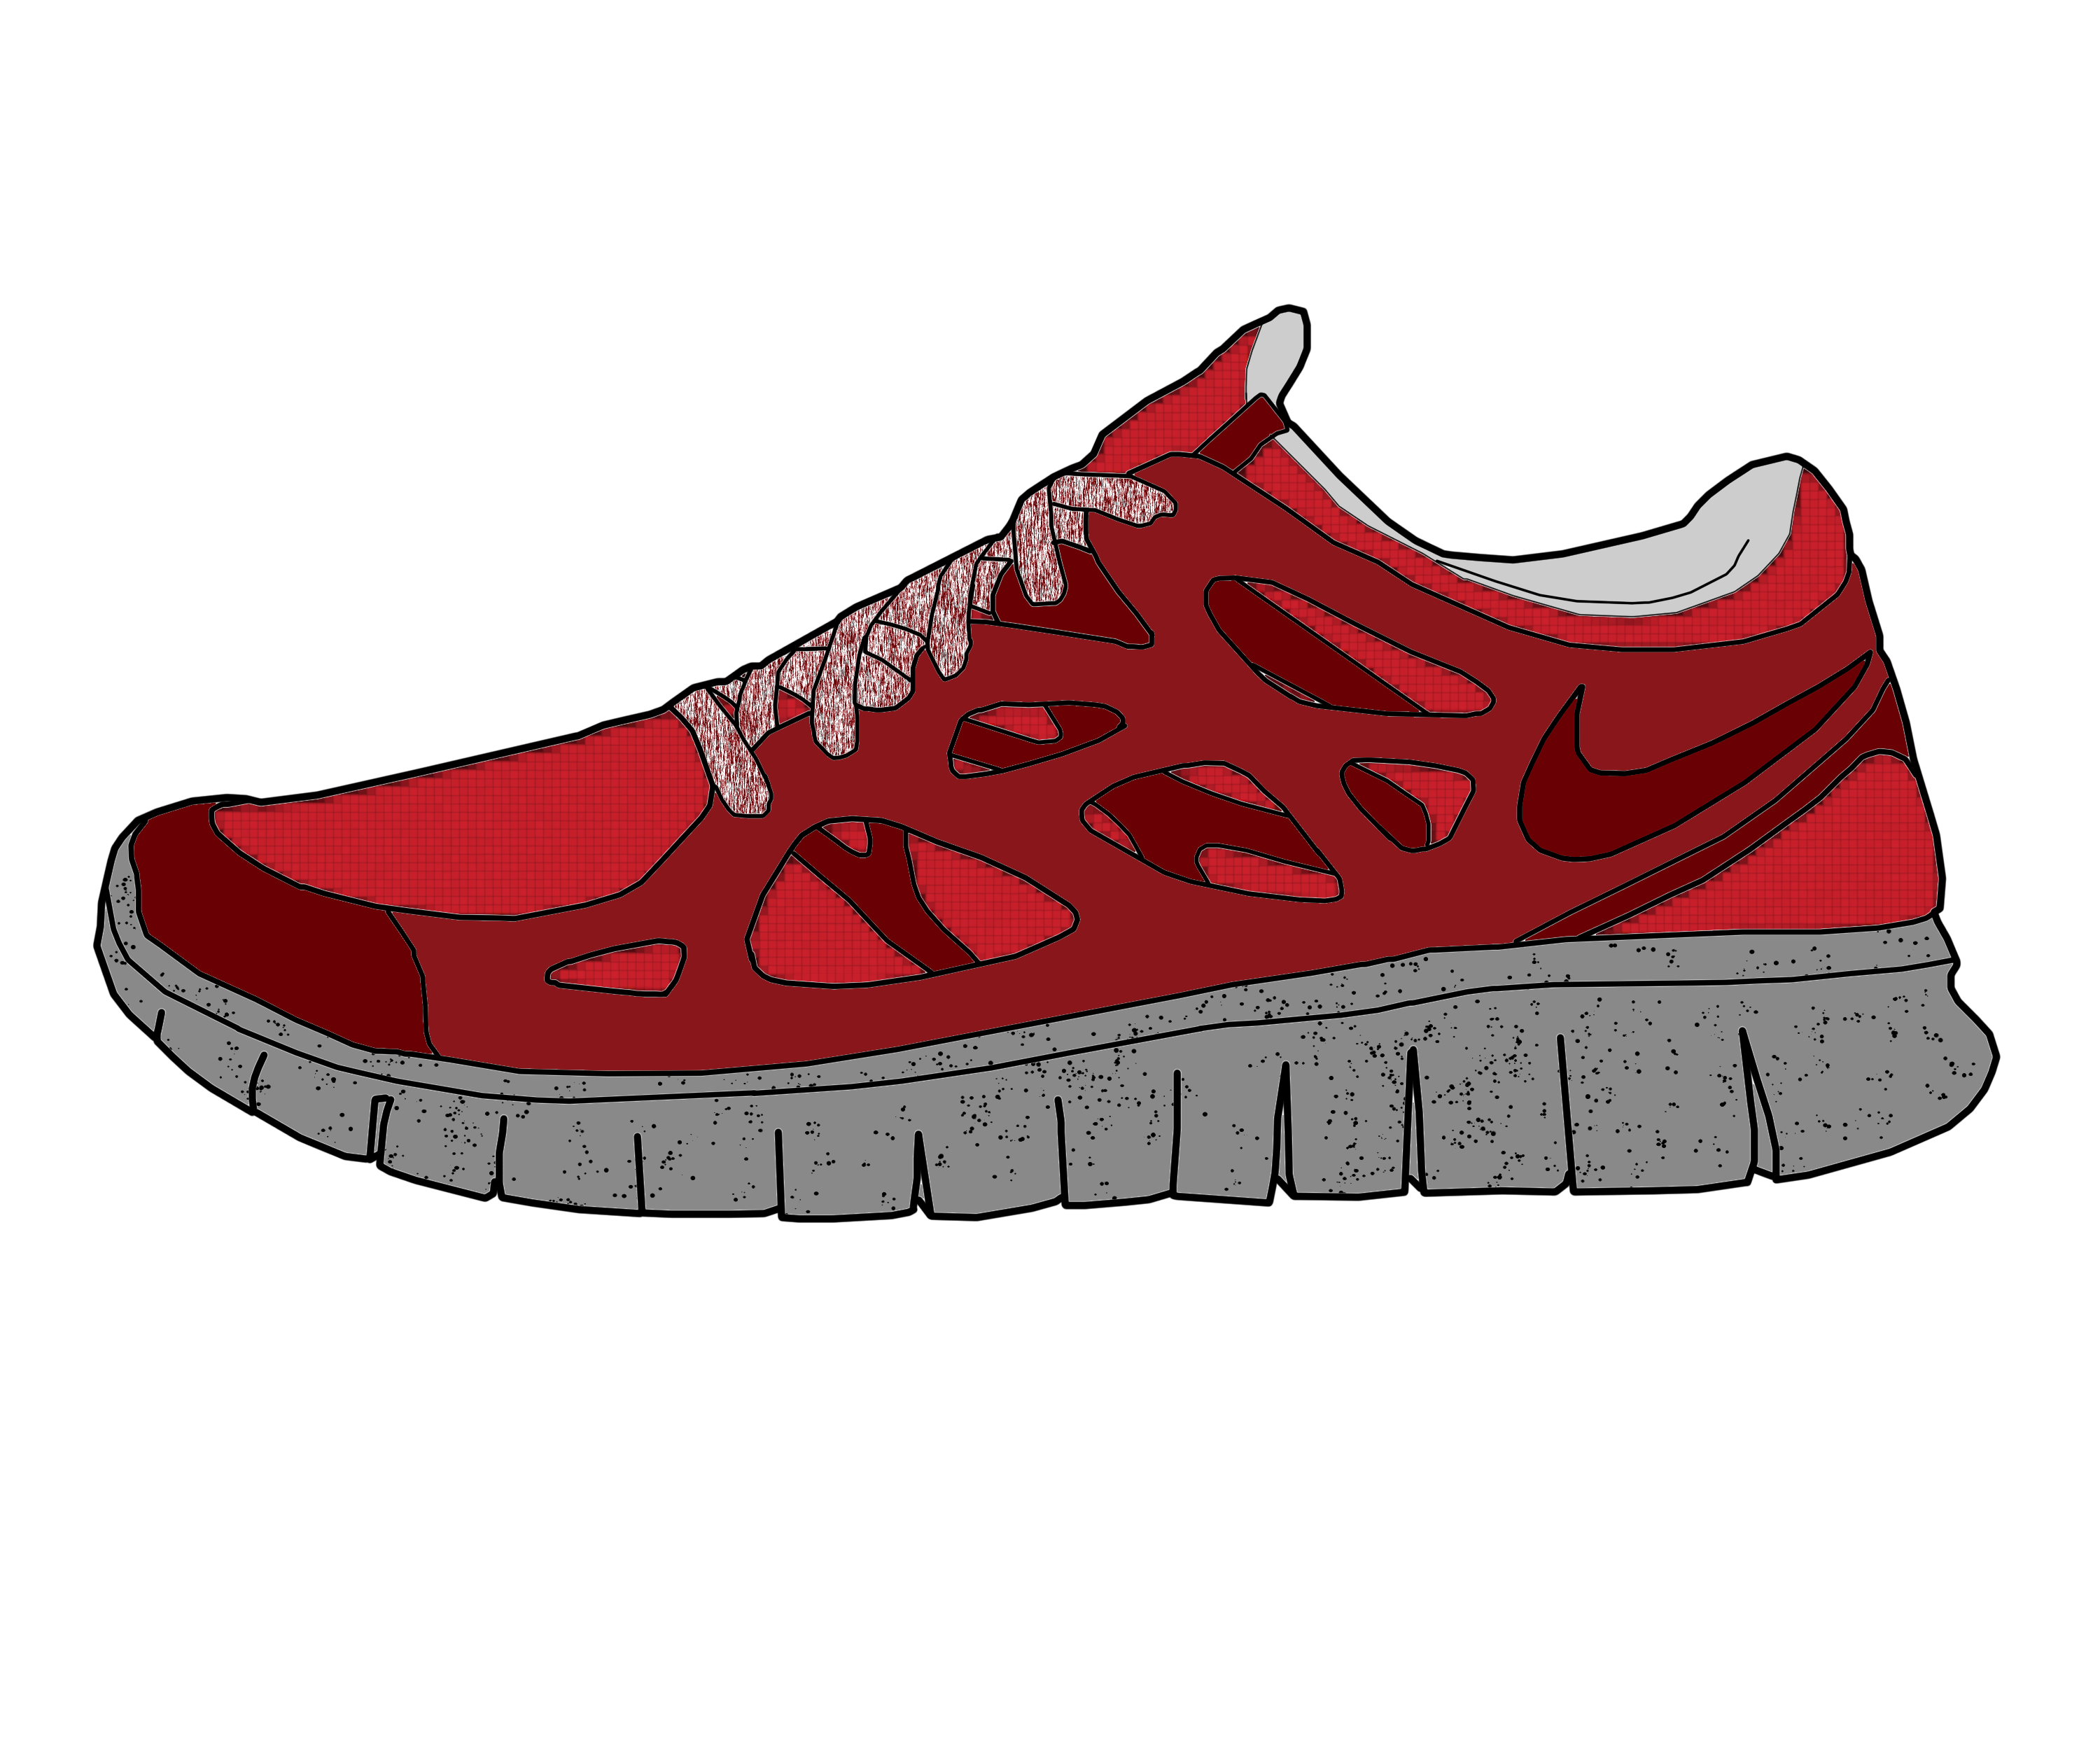 Drawn shoe nike trainer Takcho Free Explore Suede creps